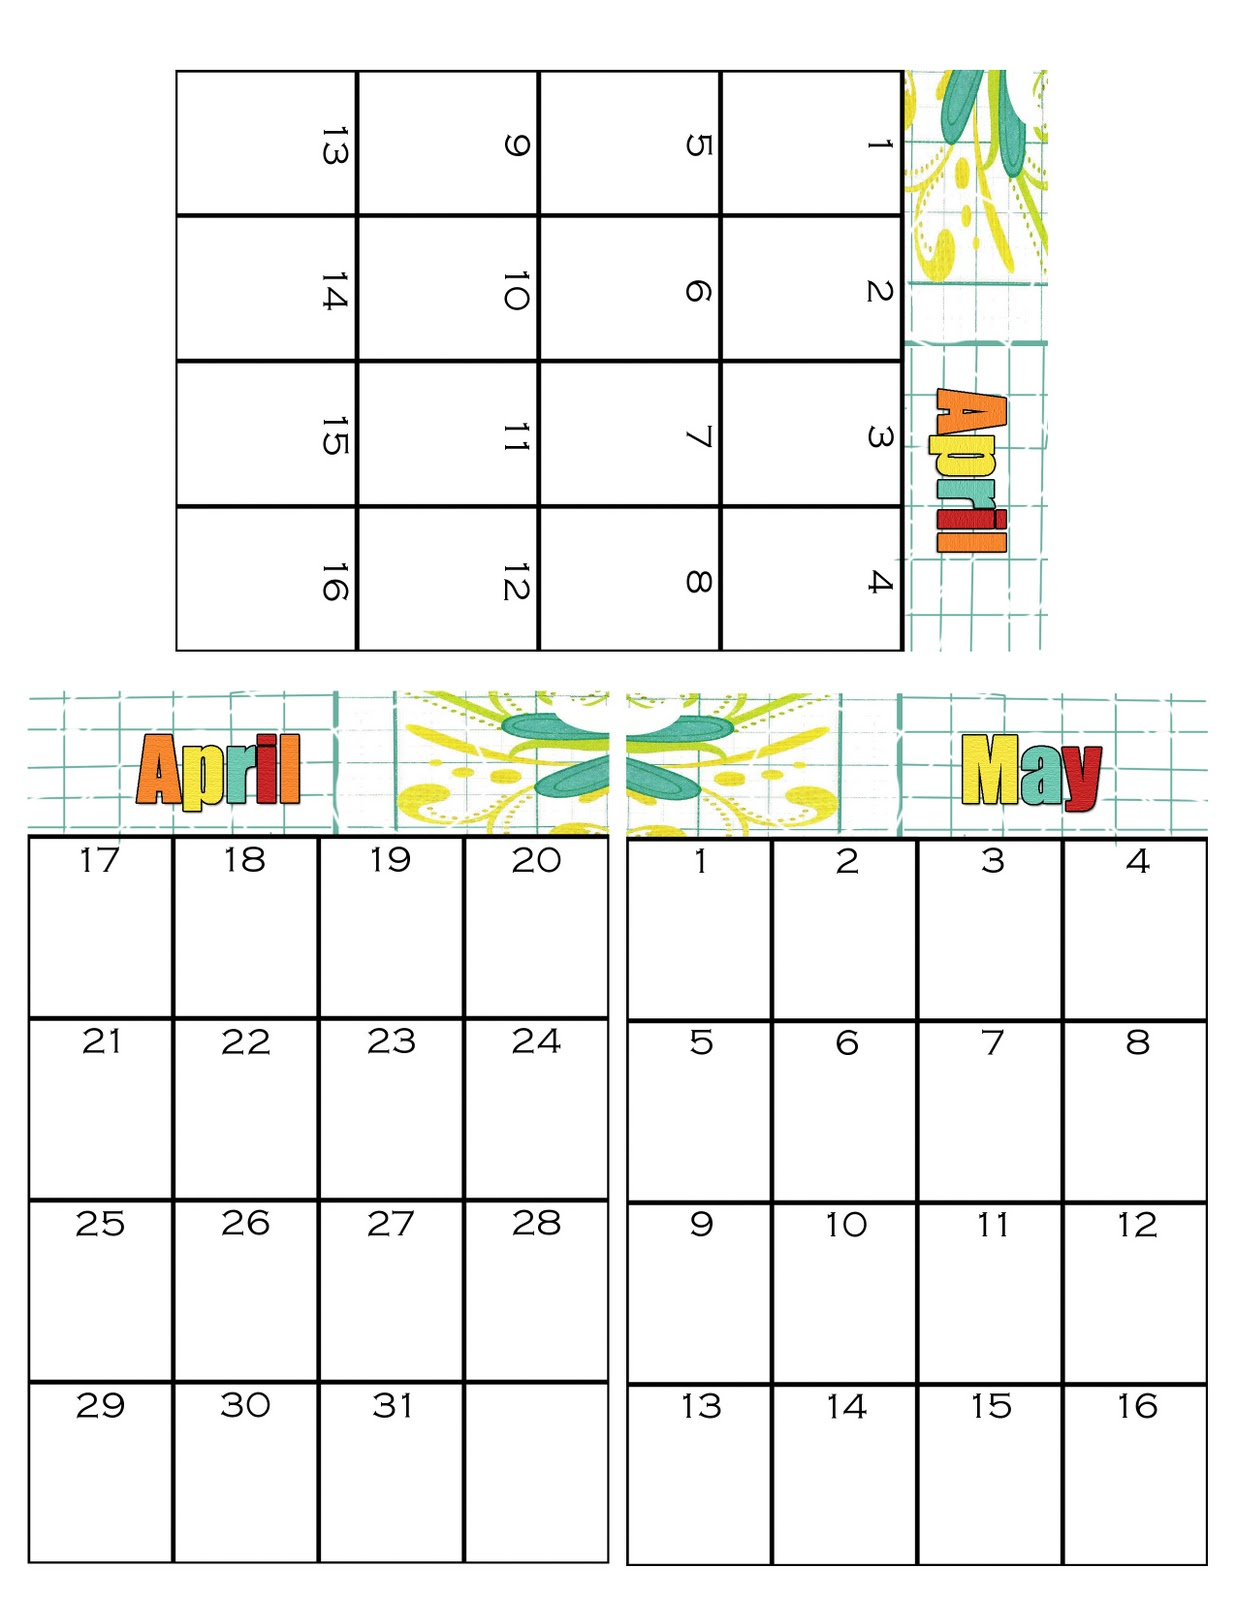 May Calendar Book : Simpsonized crafts free printable birthday calendar using